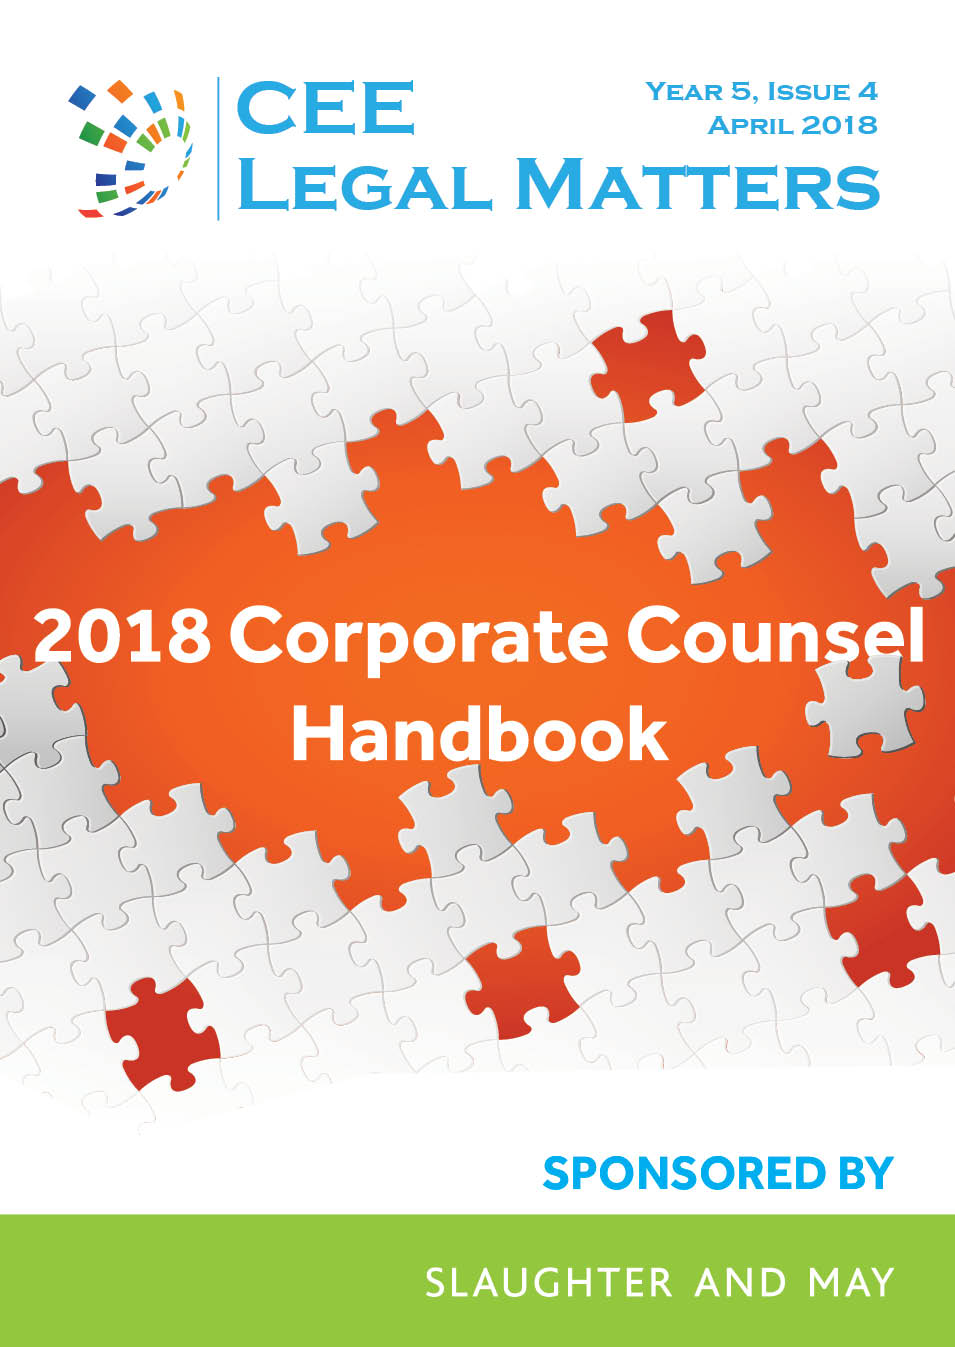 Corporate Counsel Handbook 2018 (Issue 5.4)